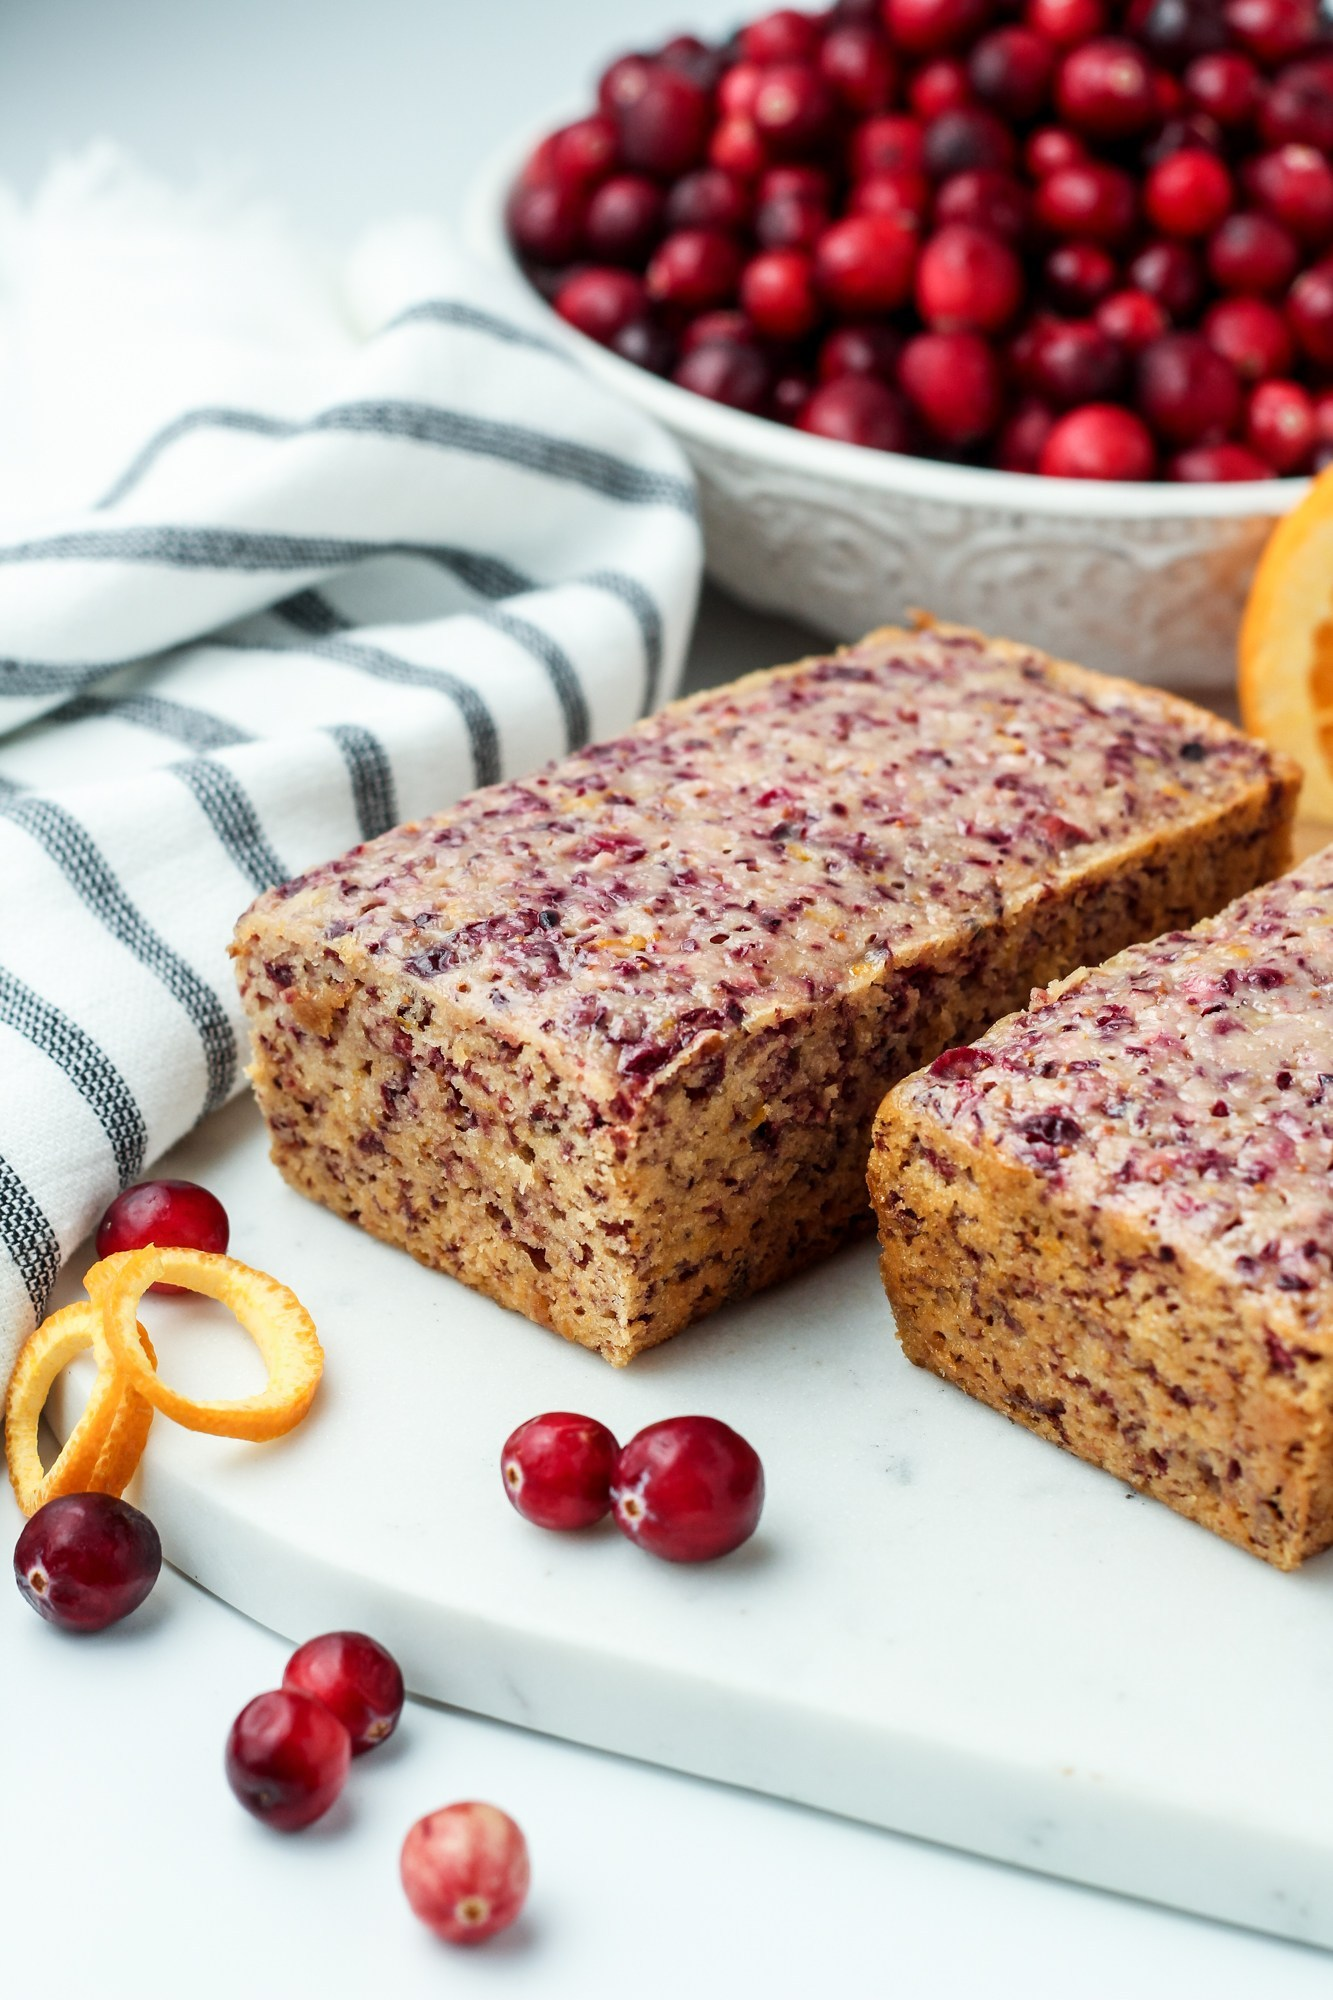 cranberry orange bread can also be a great thanksgiving side dish